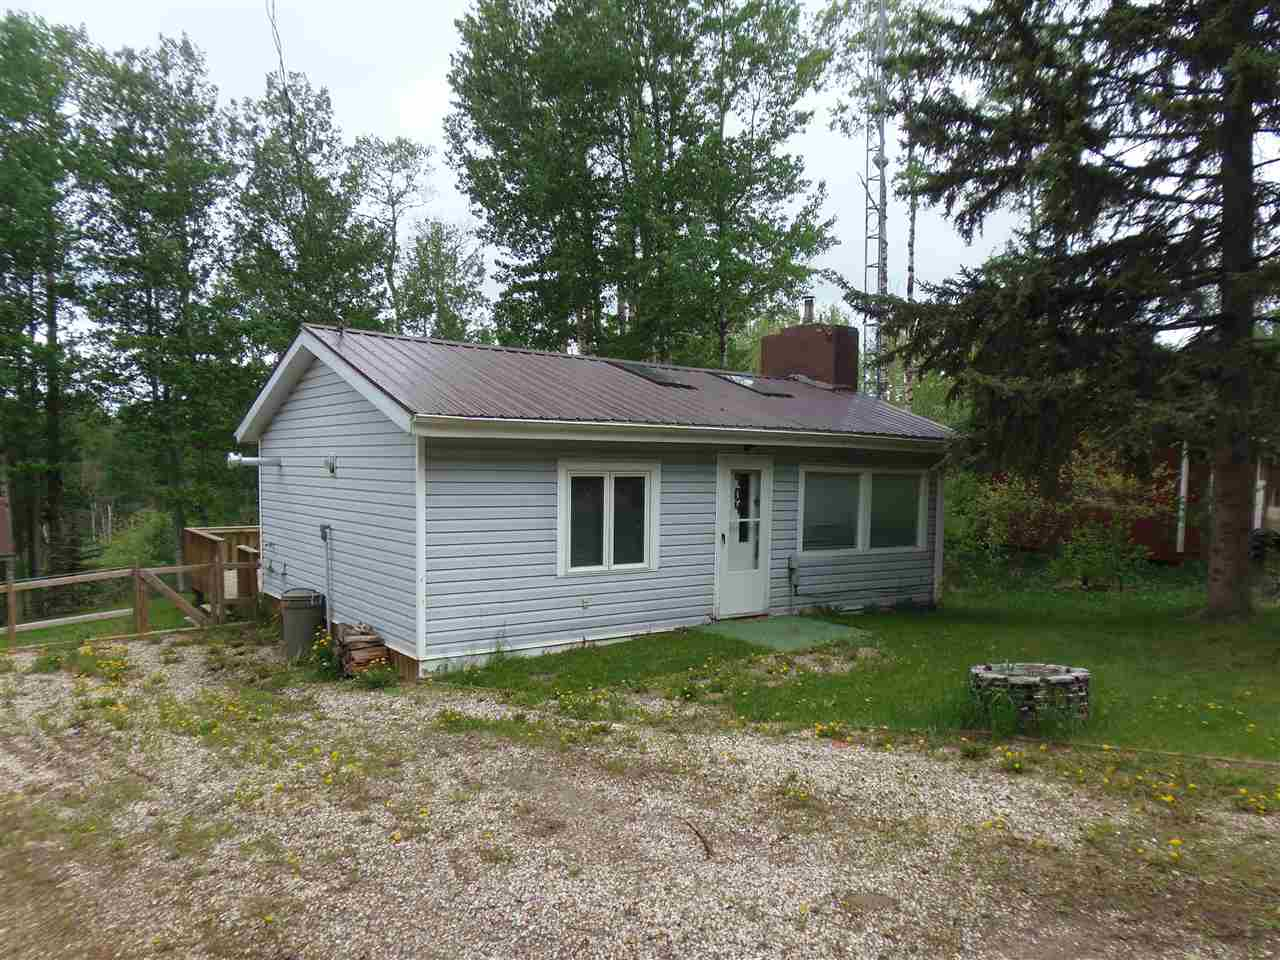 Main Photo: 904 53102 RGE RD 40 Road: Rural Parkland County House for sale : MLS® # E4069147